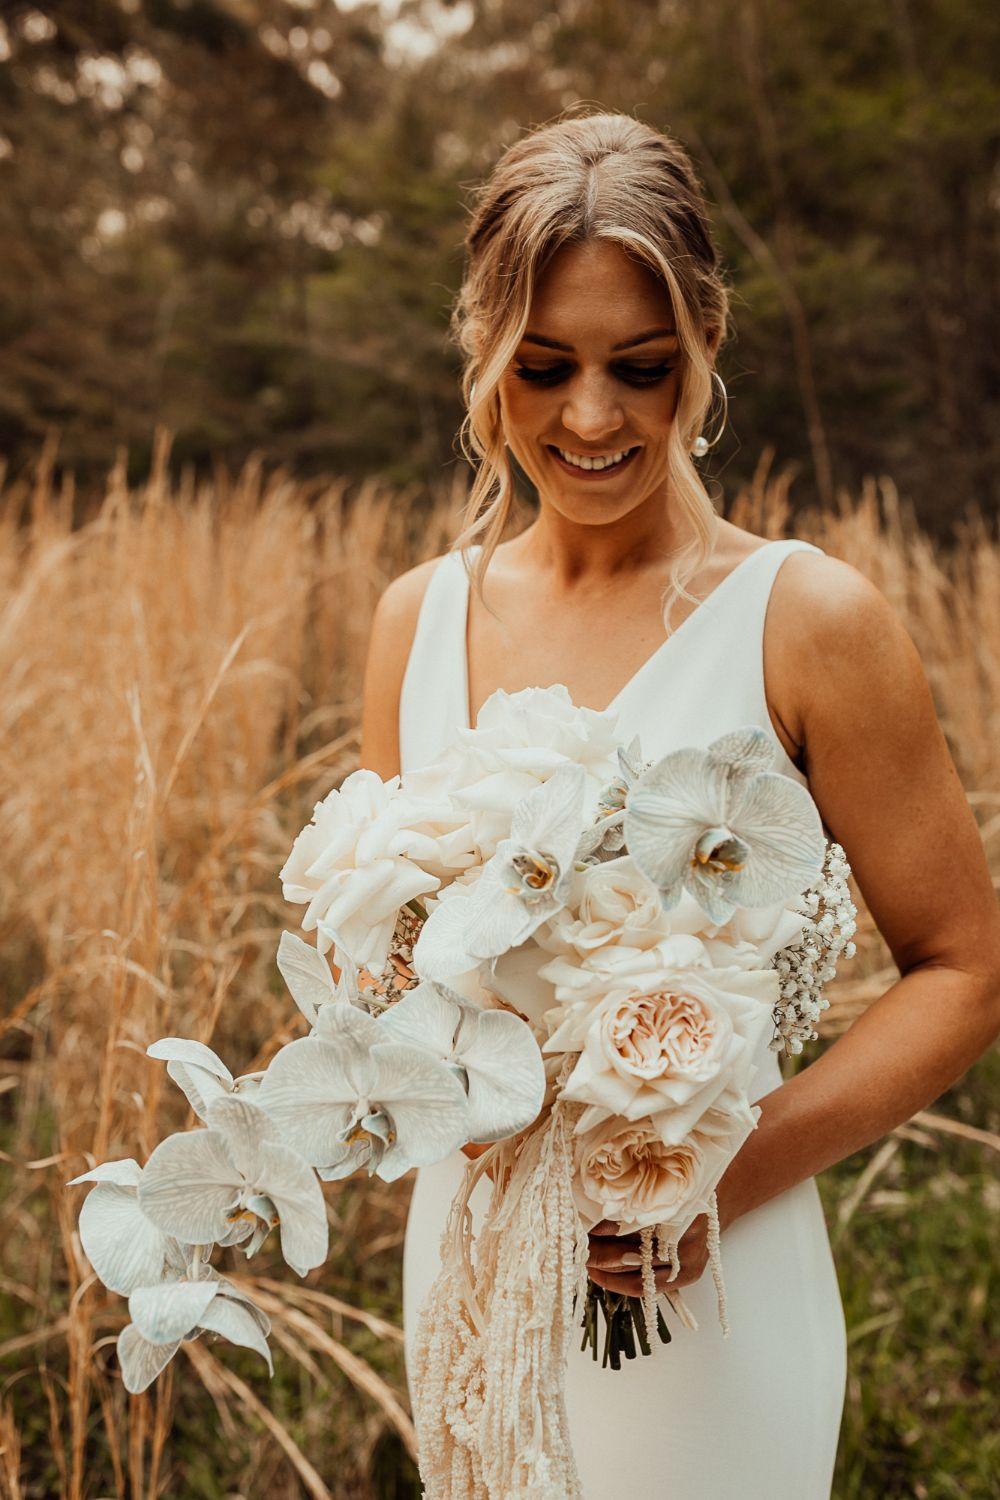 kendell tyne photography stables of somersby bridal gown floral design venue styling